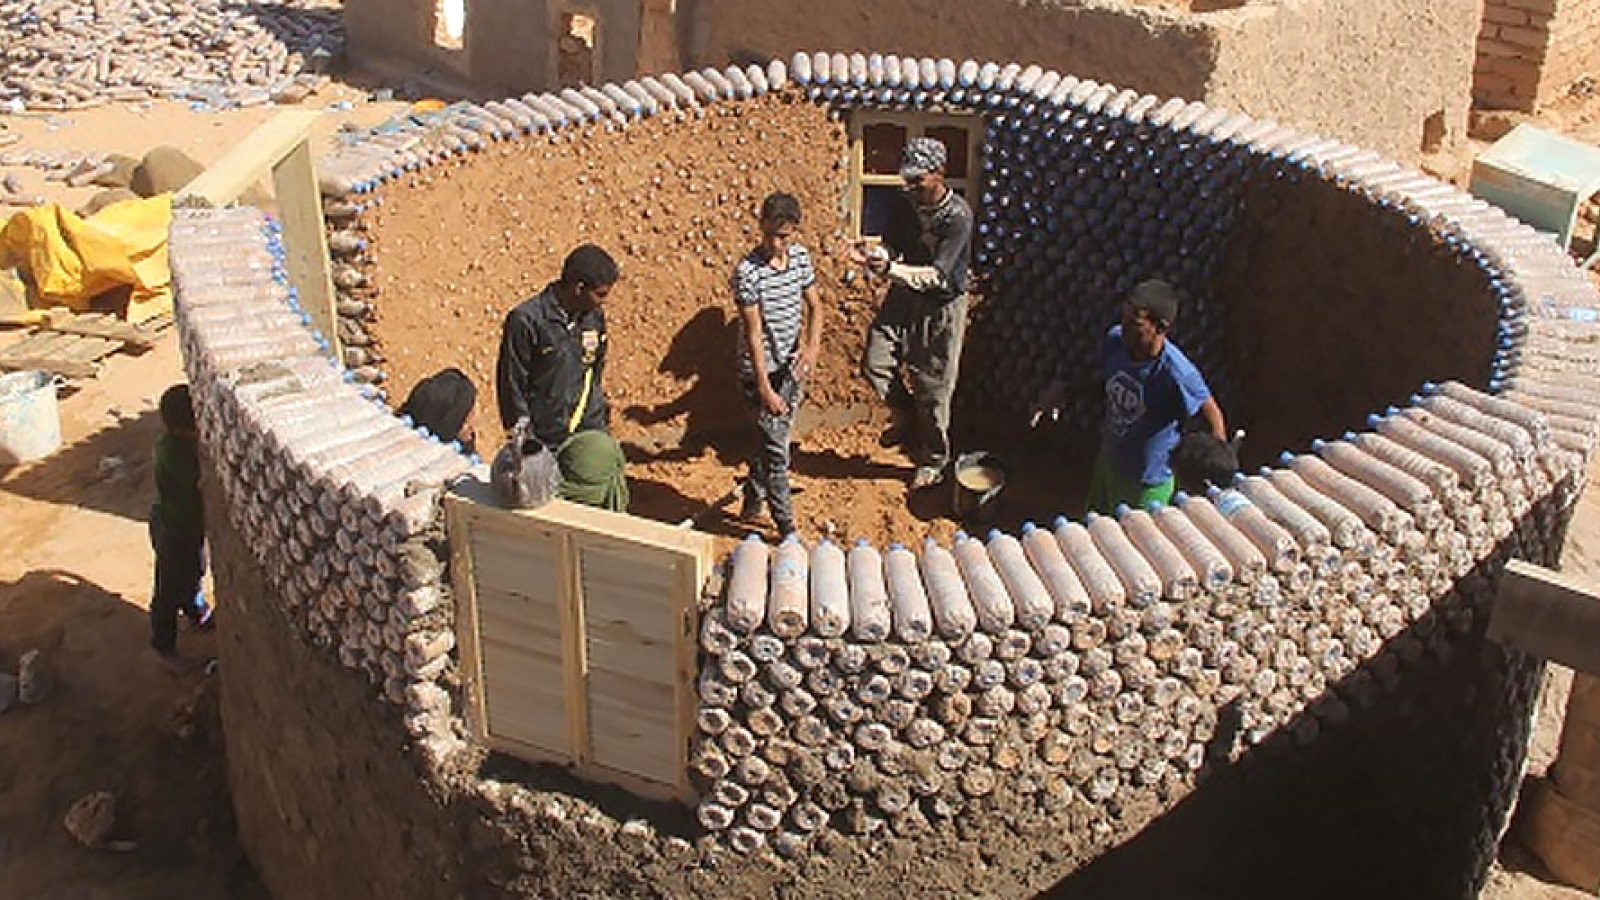 Building bottled homes for refugees in south-west Algeria: a story from an Erasmus Mundus graduate